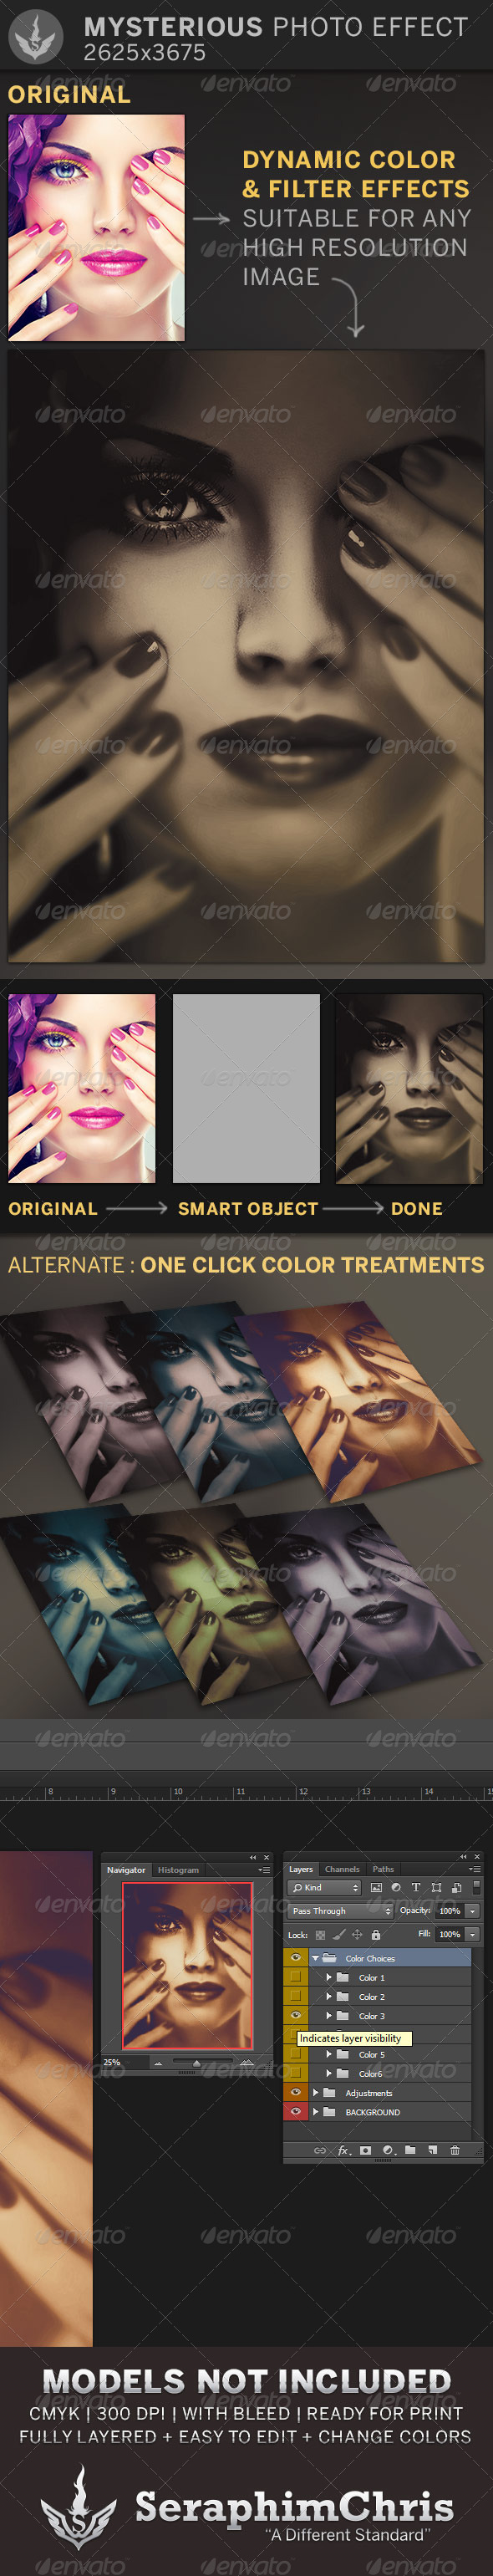 GraphicRiver Mysterious Photo Effect Template 6728252